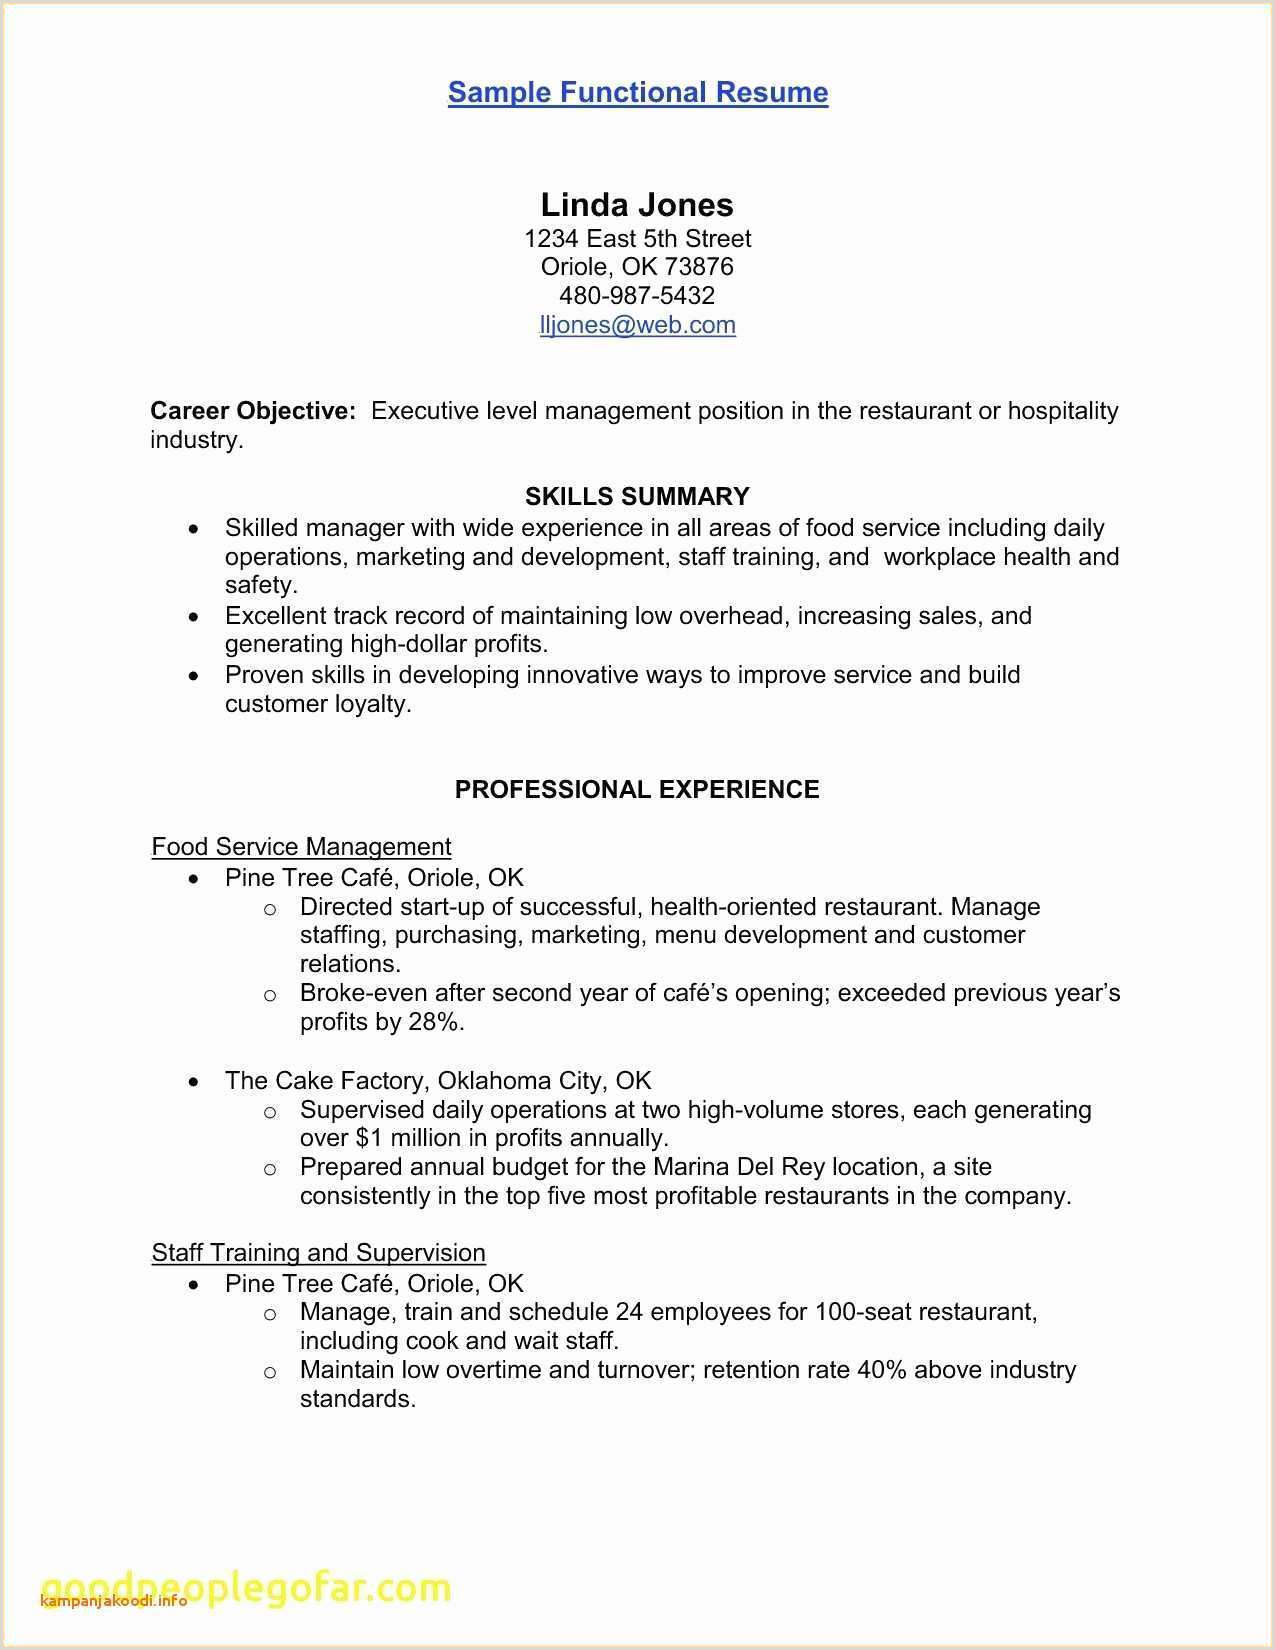 Hvac Installer Job Description for Resume Auto Mechanic Job Description Resume Responsibilities Bunch